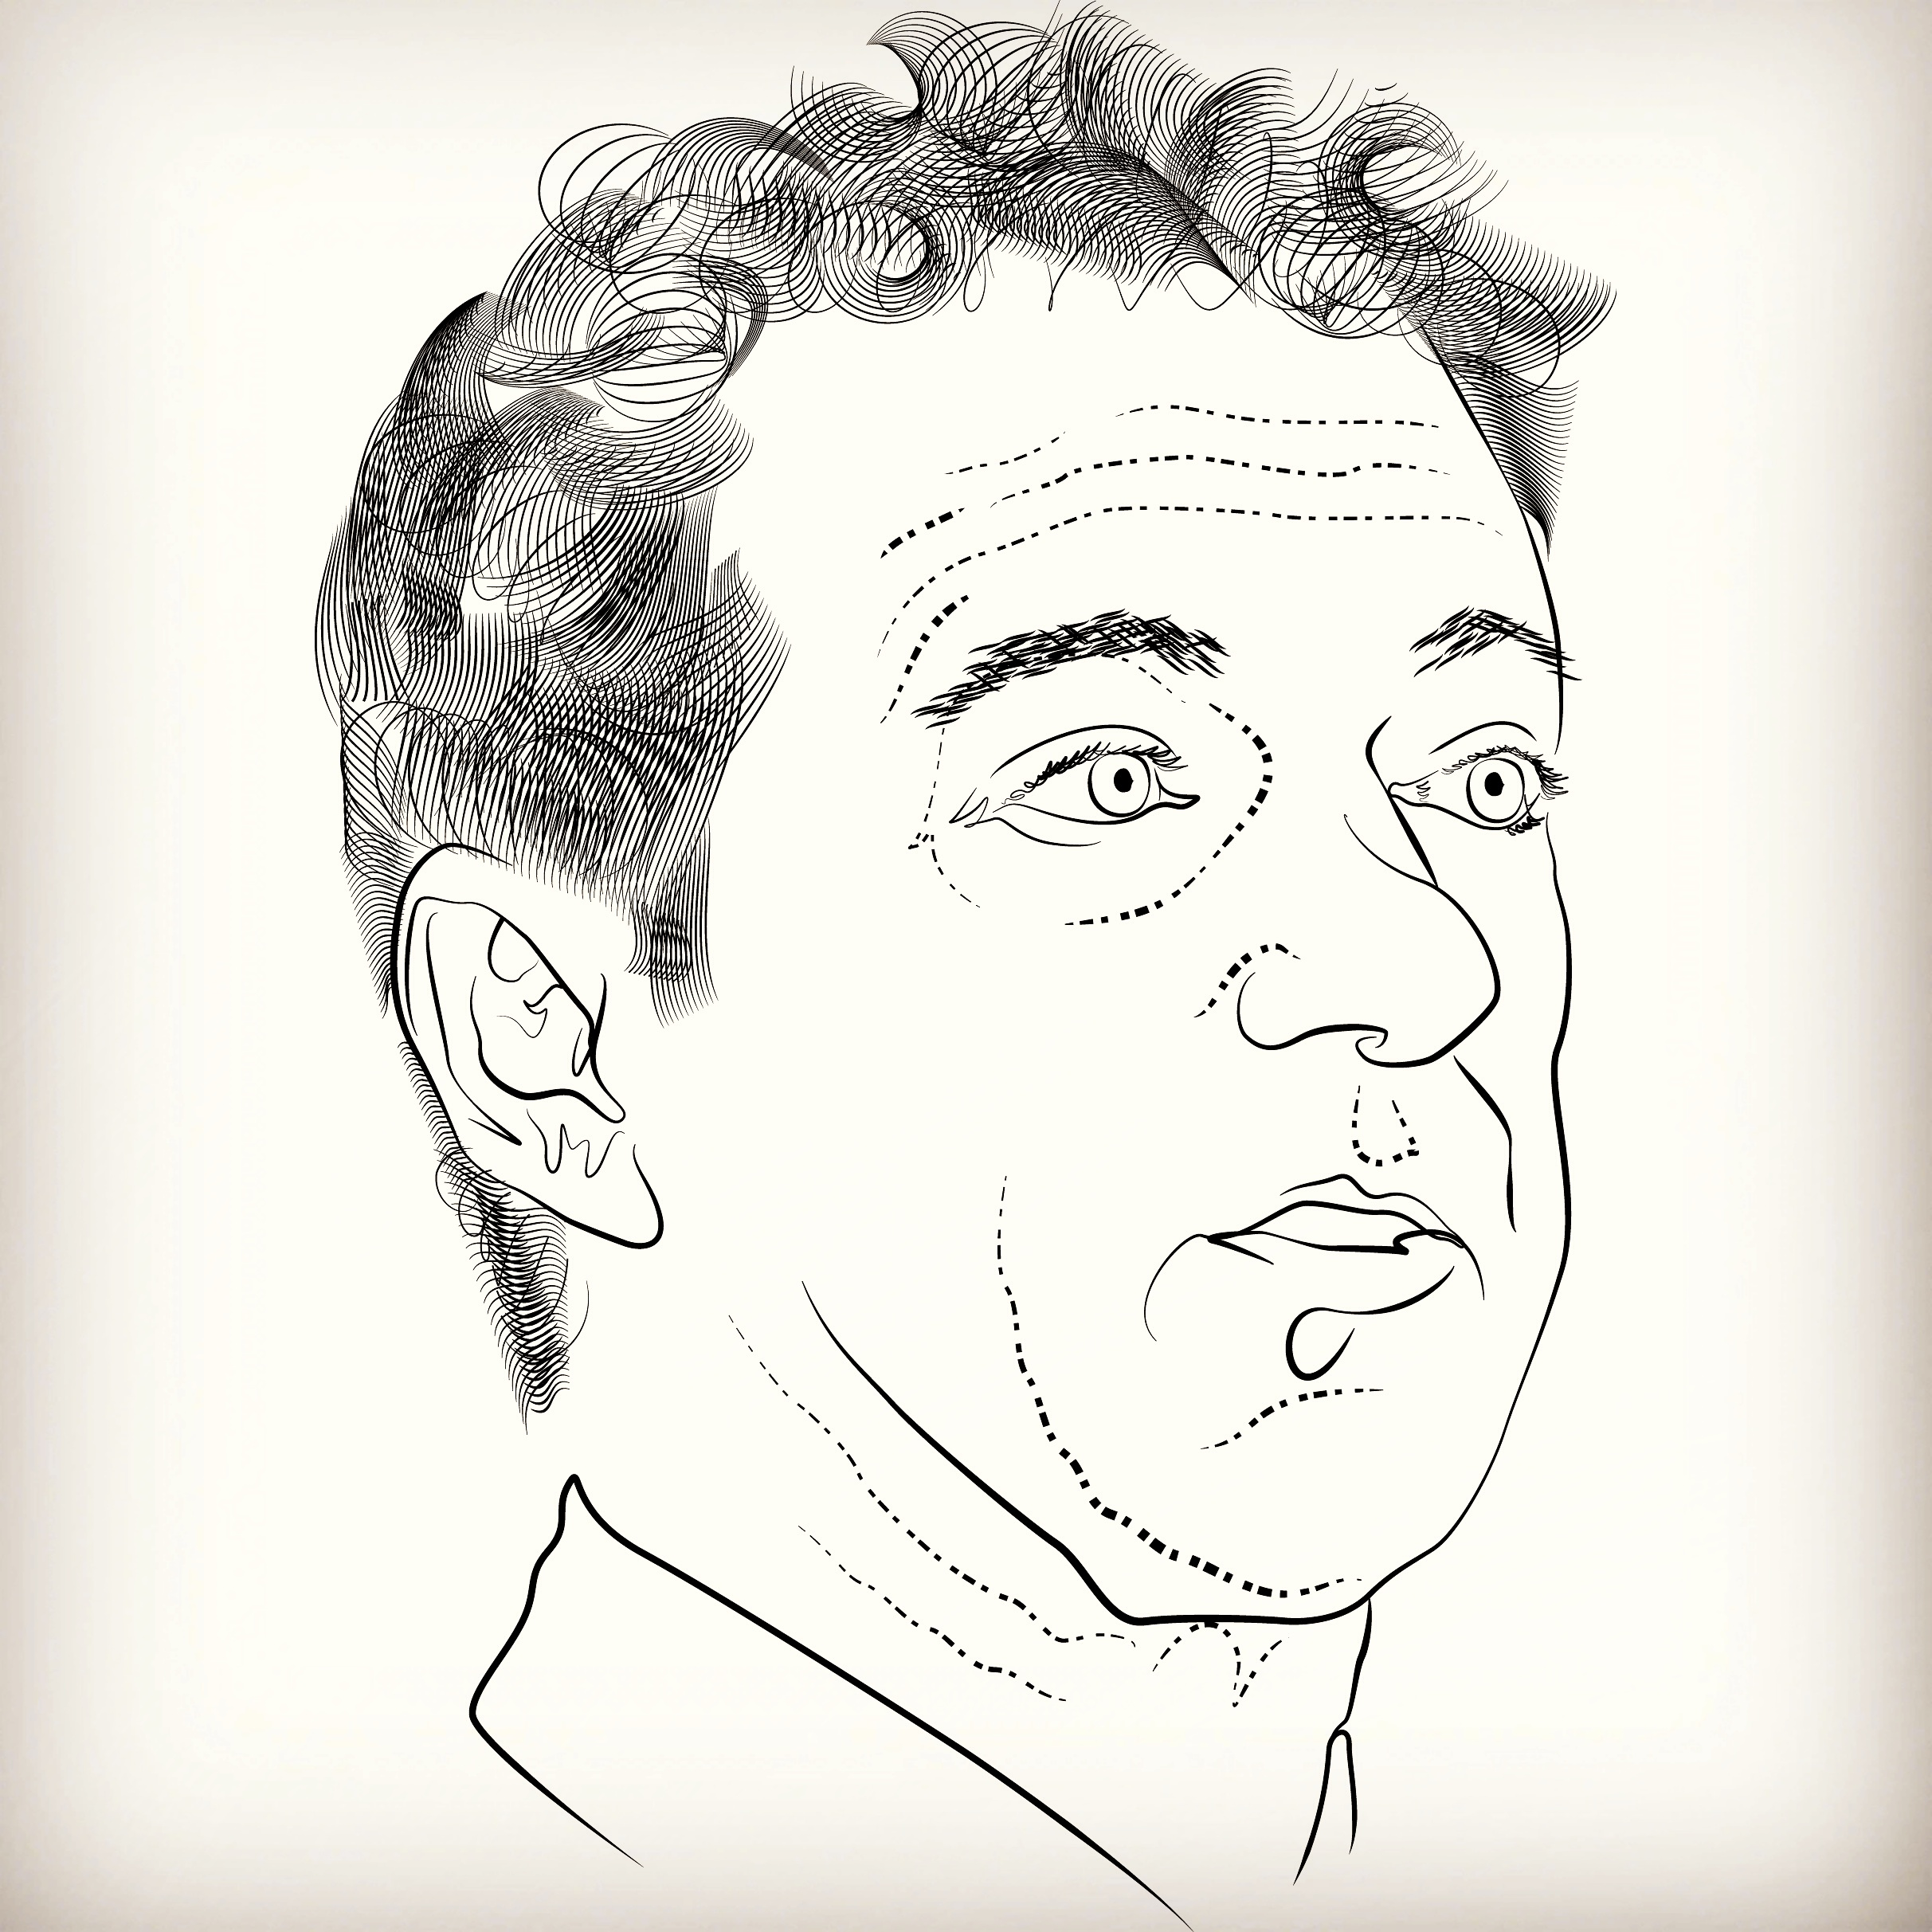 Presidential Candidate Series - Rand Paul